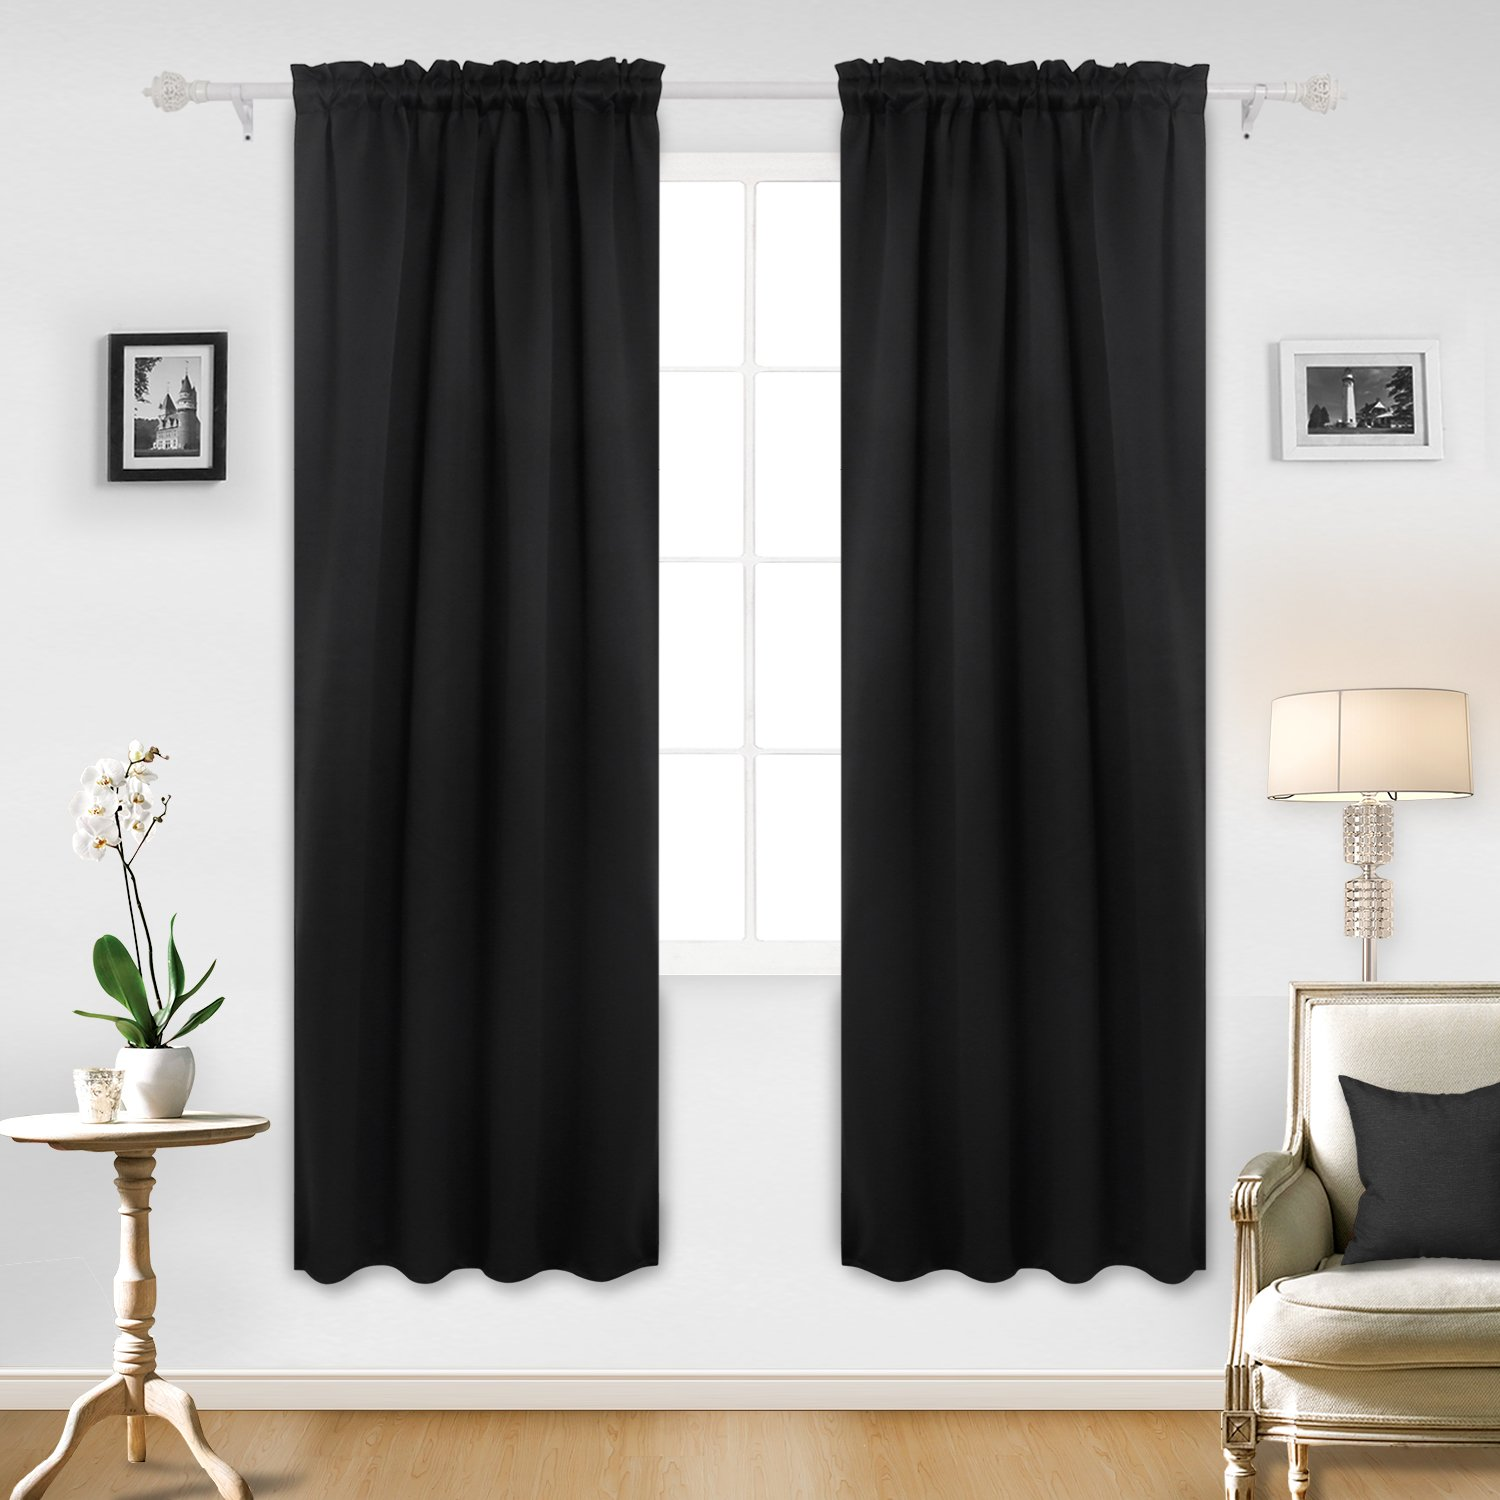 Deconovo Rod Pocket Curtains Blackout Room Darkening Curtains for Bedroom